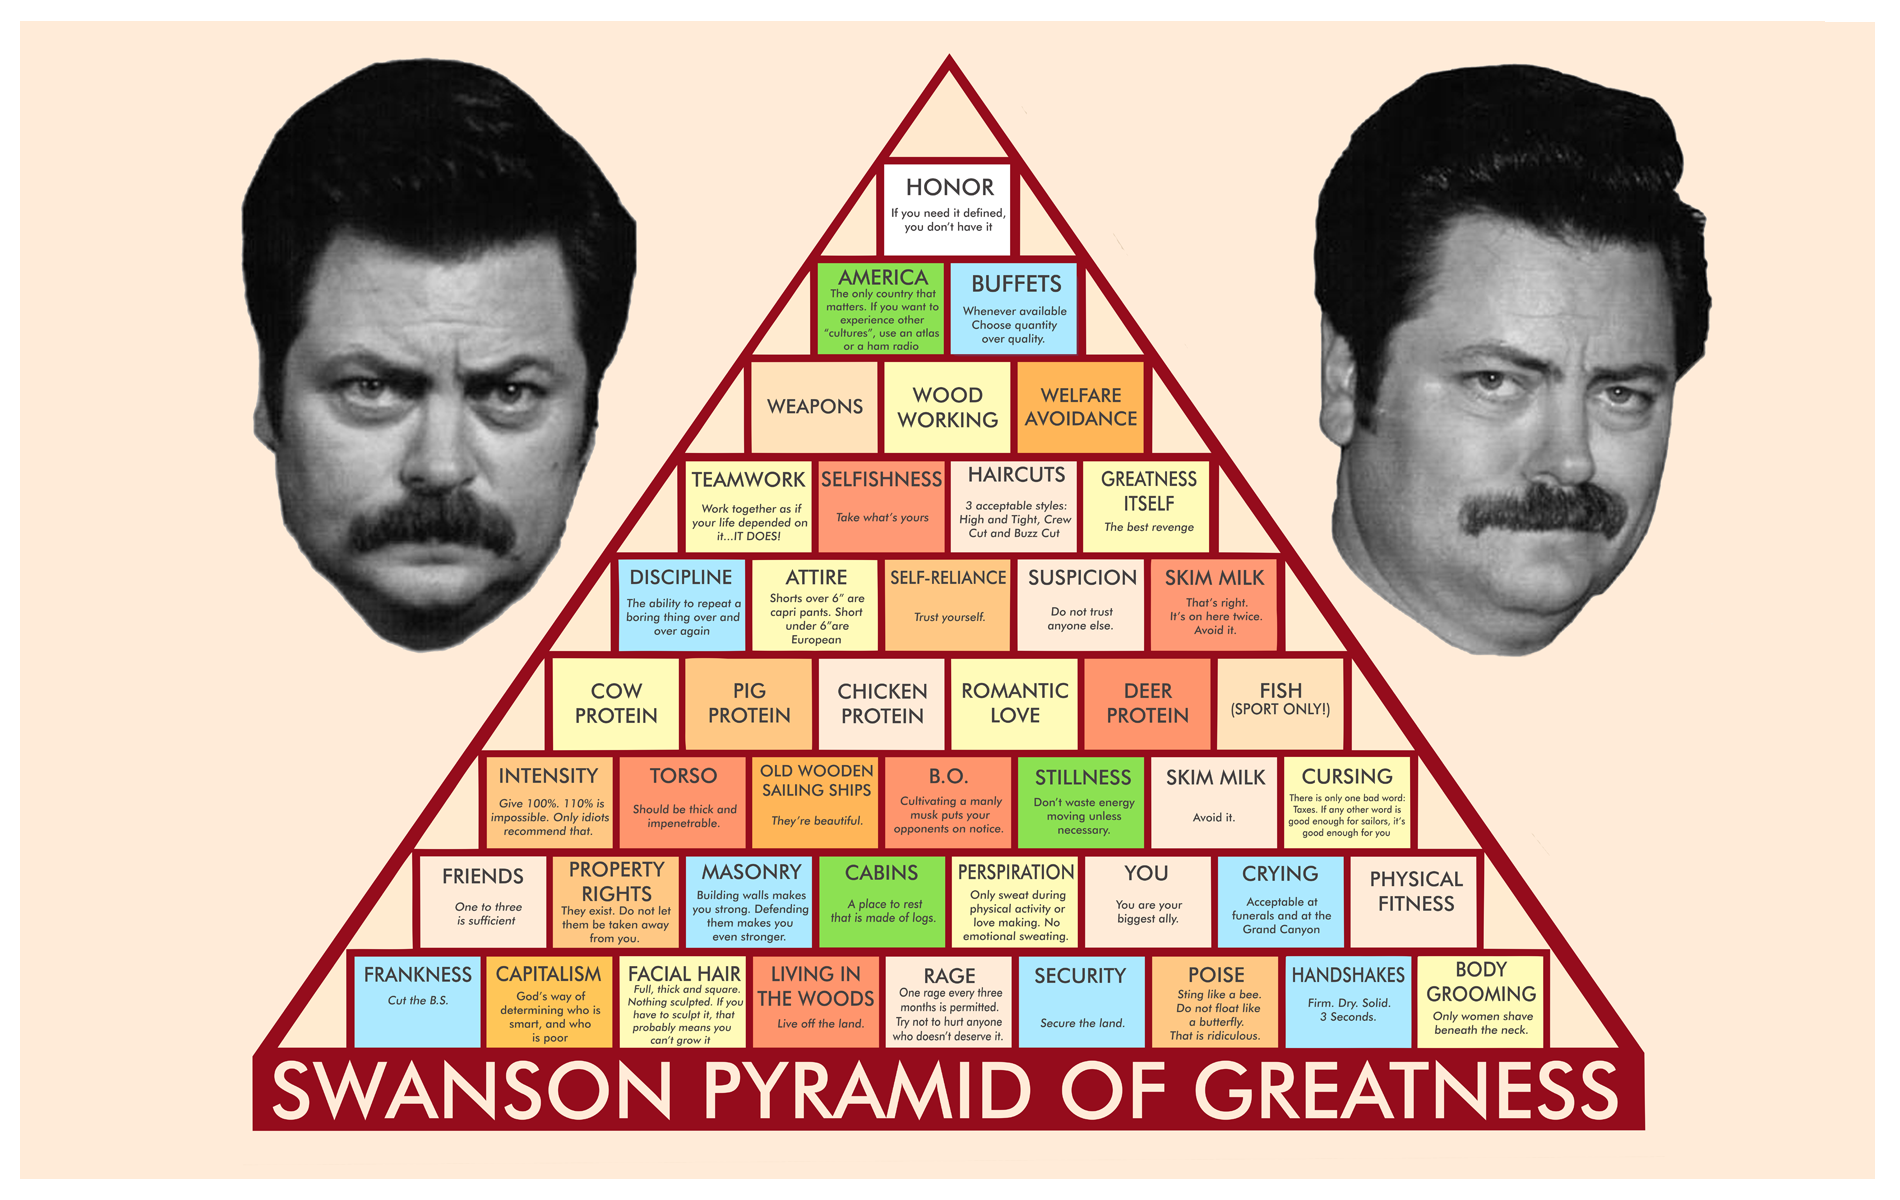 photograph about Ron Swanson Pyramid of Greatness Printable Version named Ron Swanson Pyramid Of Greatness Wallpapers Daves Geeky Recommendations